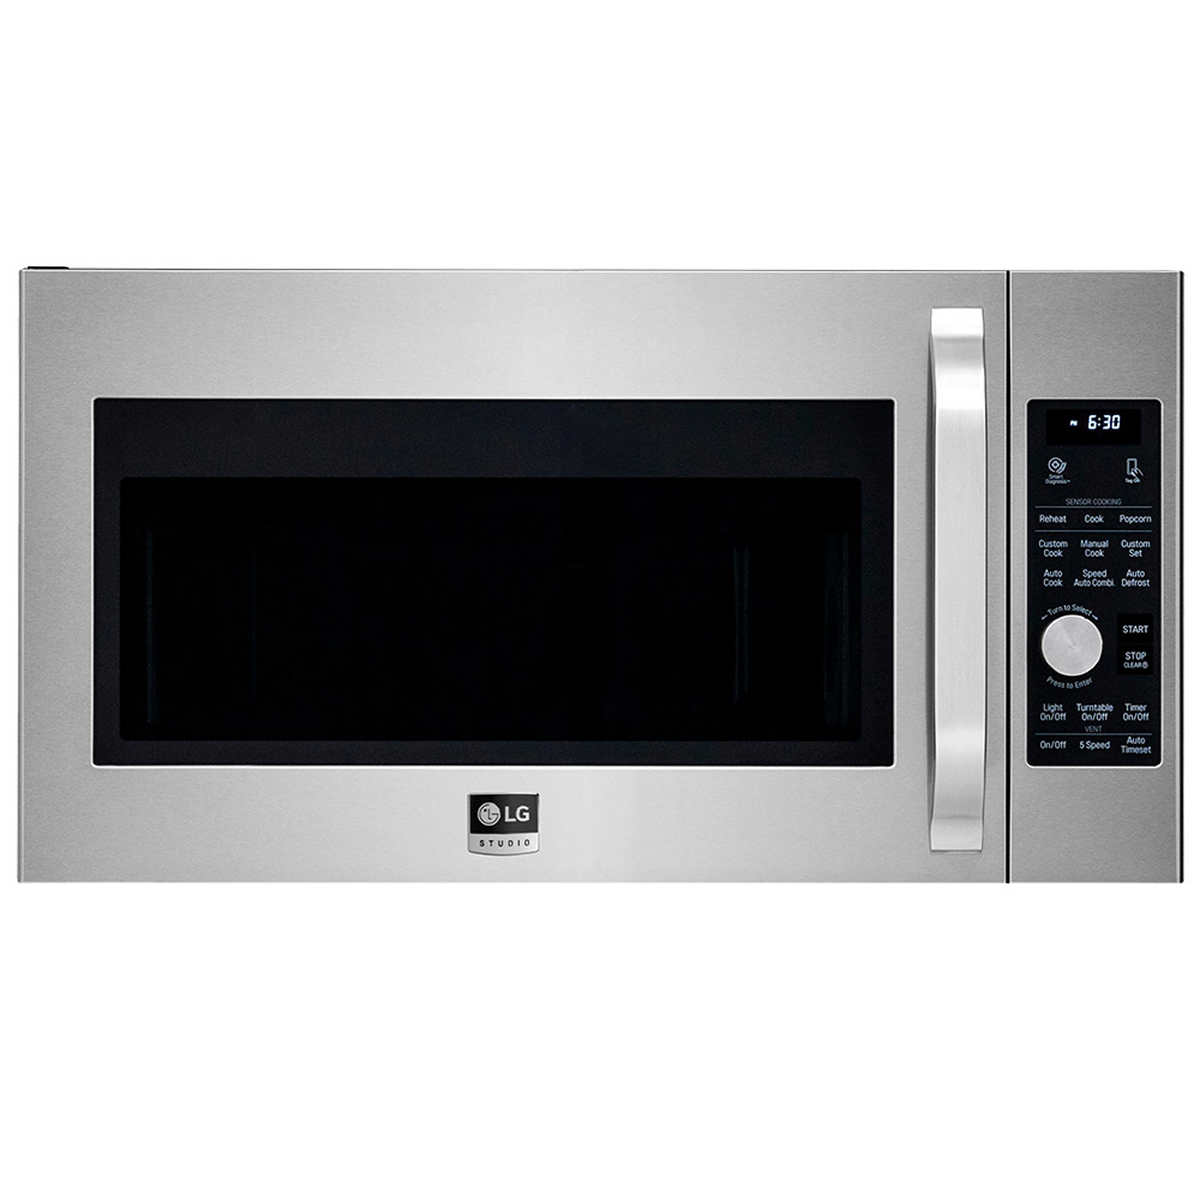 Whirlpool white ice microwave canada - Lg Studio 1 7cuft Over The Range Microwave Oven In Stainless Steel Lsmc3086st